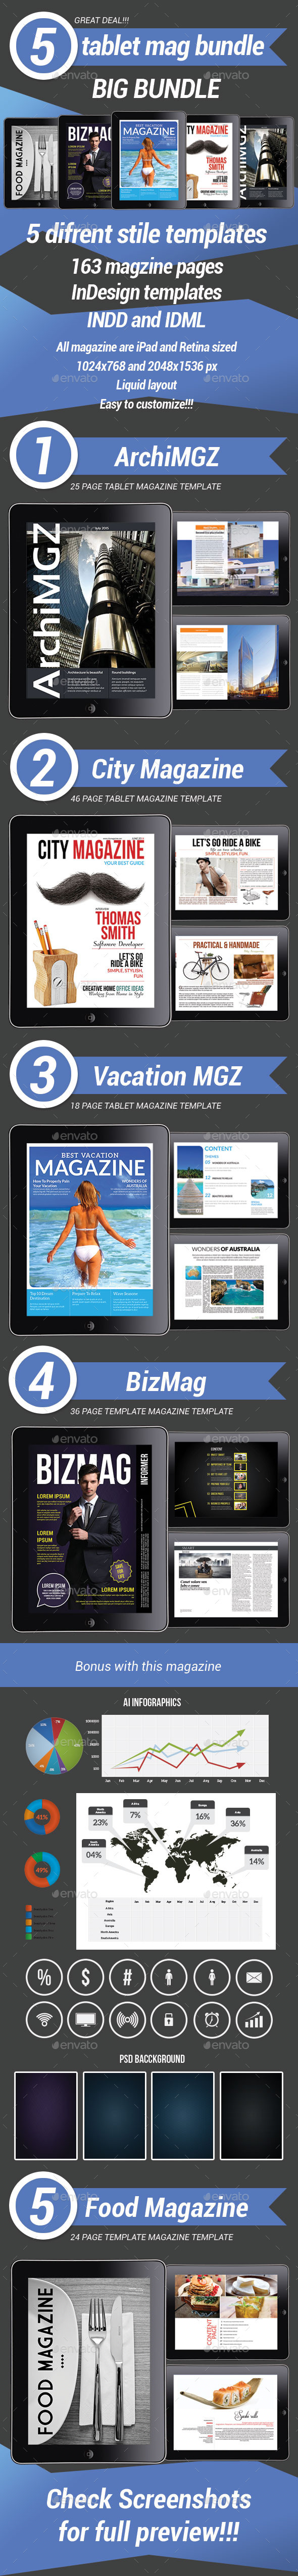 5 Tablet Magzaine Bundle - Digital Magazines ePublishing